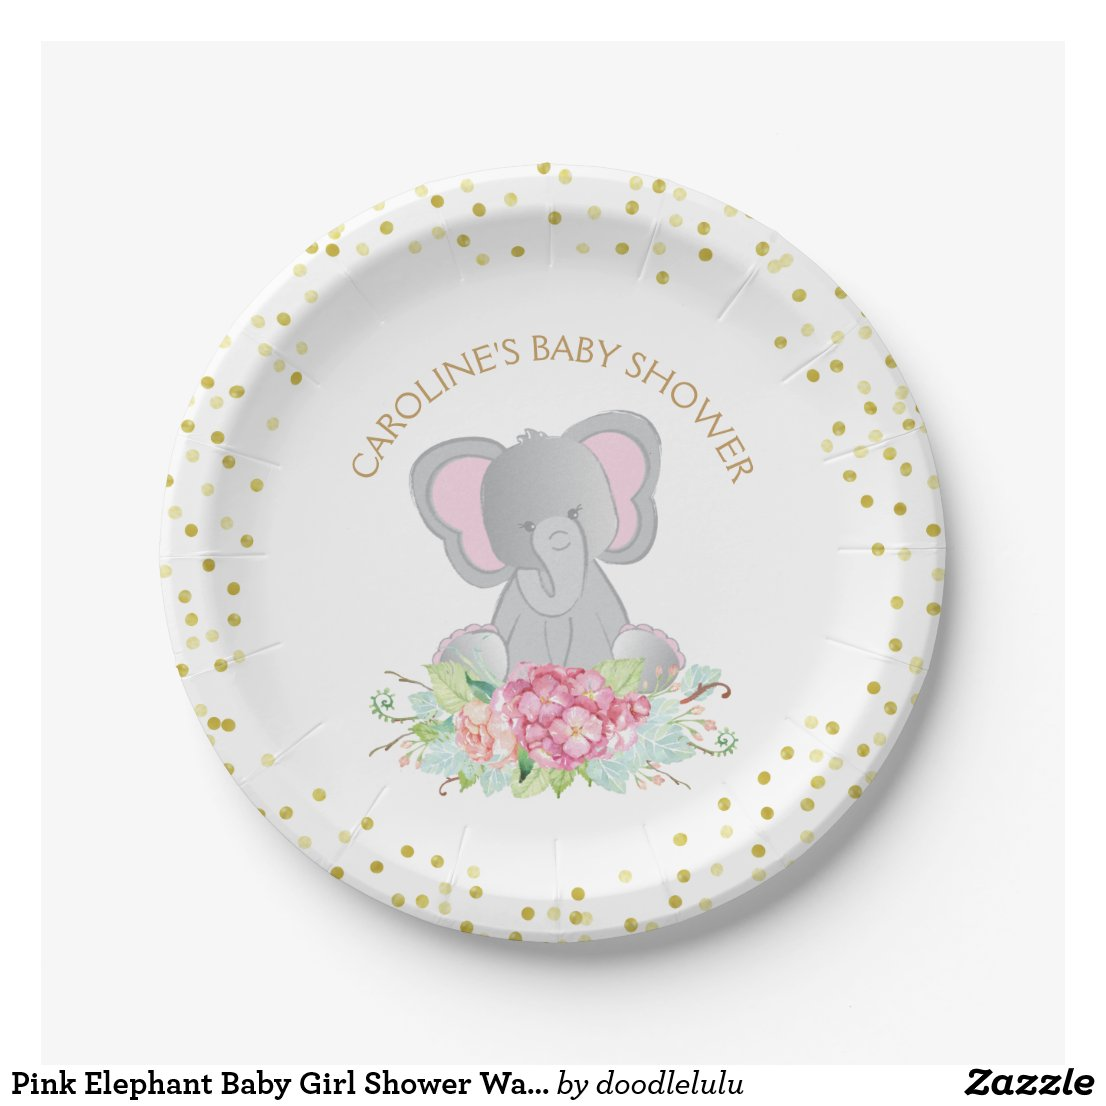 Pink Elephant Baby Girl Shower Watercolor Floral Paper Plate